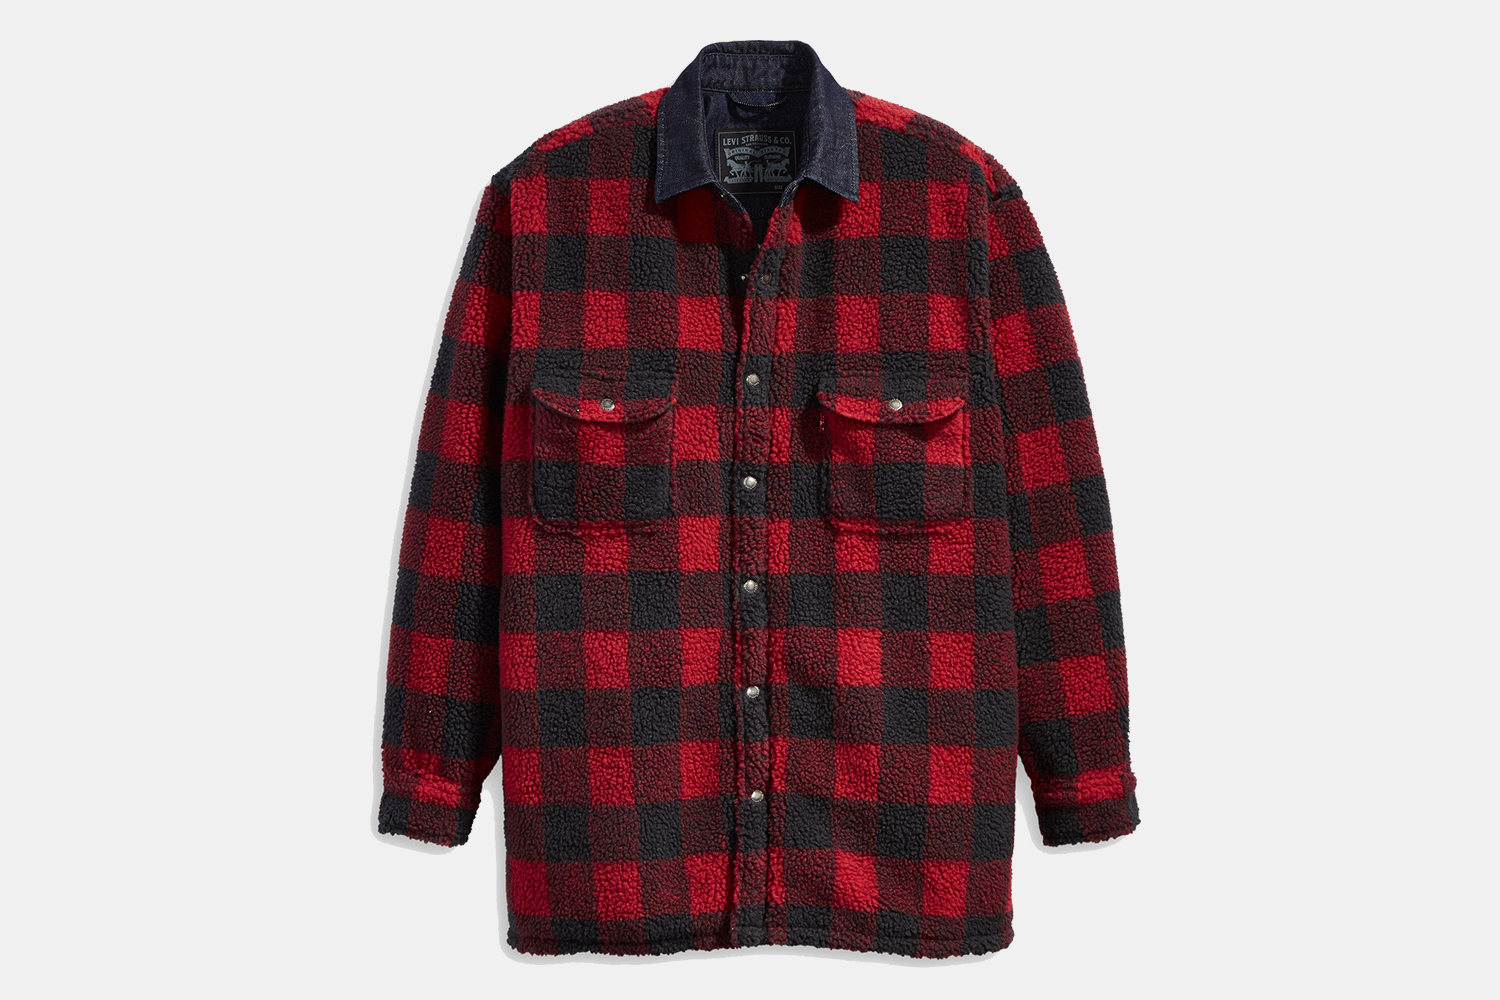 Levi's Sherpa Utility Worker Shirt